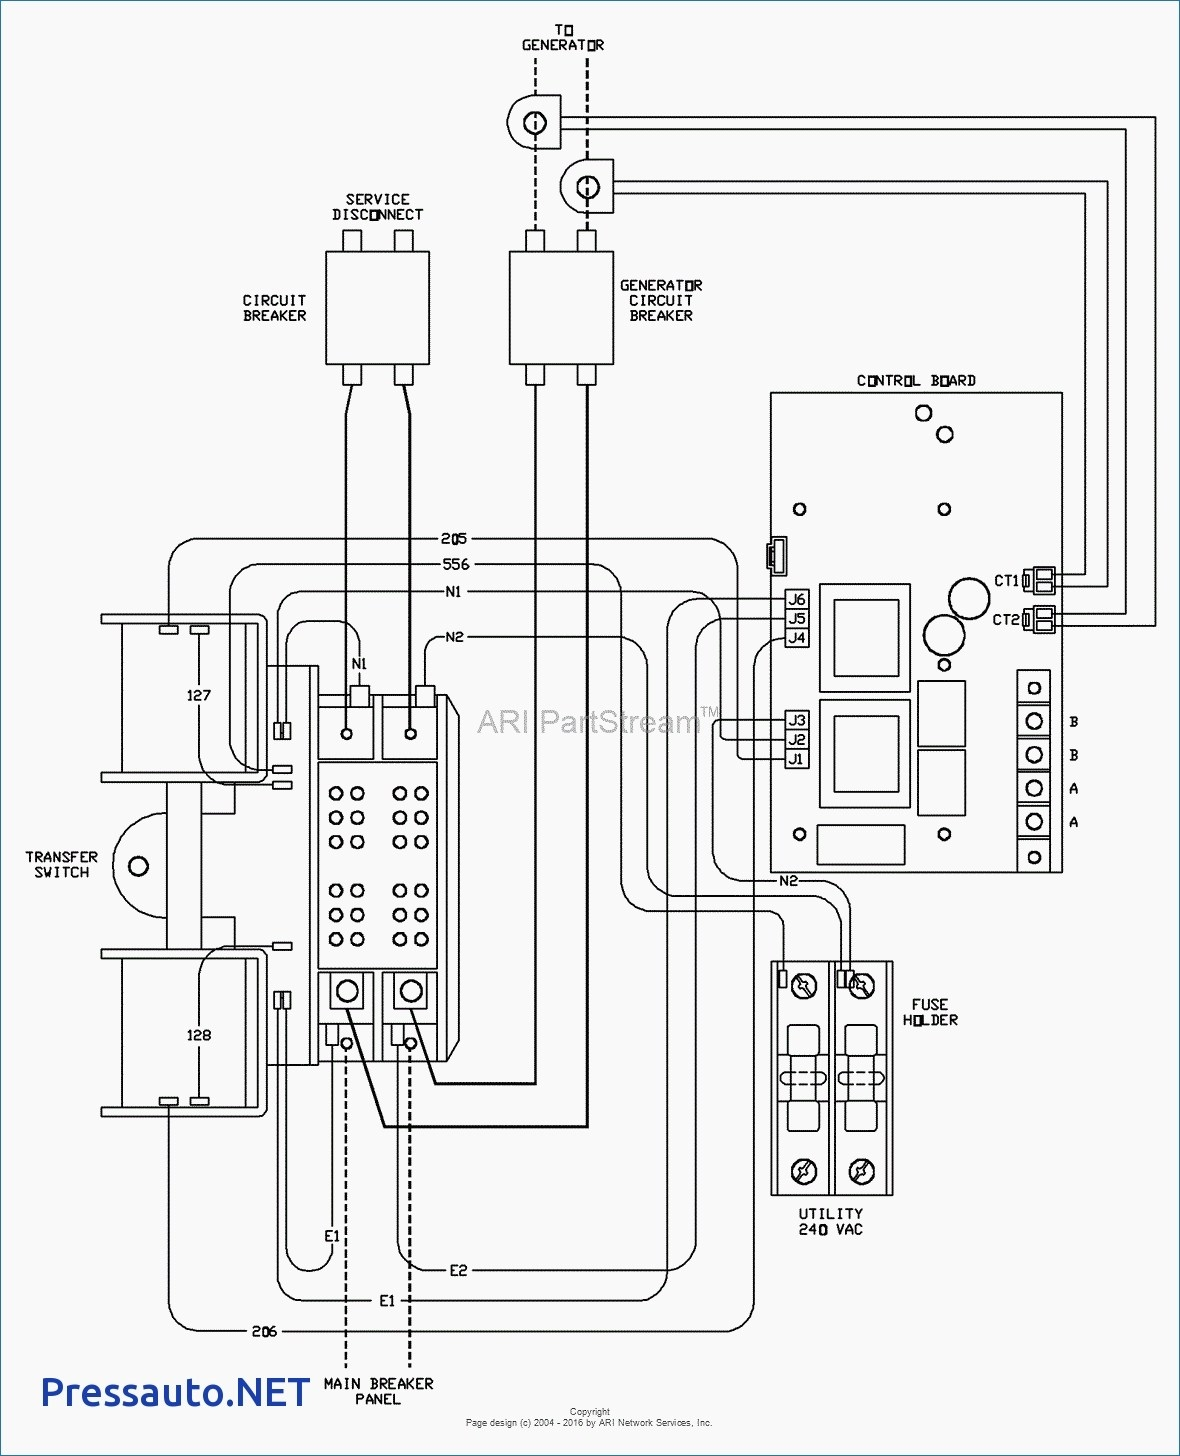 Transfer Switch Wiring Diagram | Free Wiring Diagram on